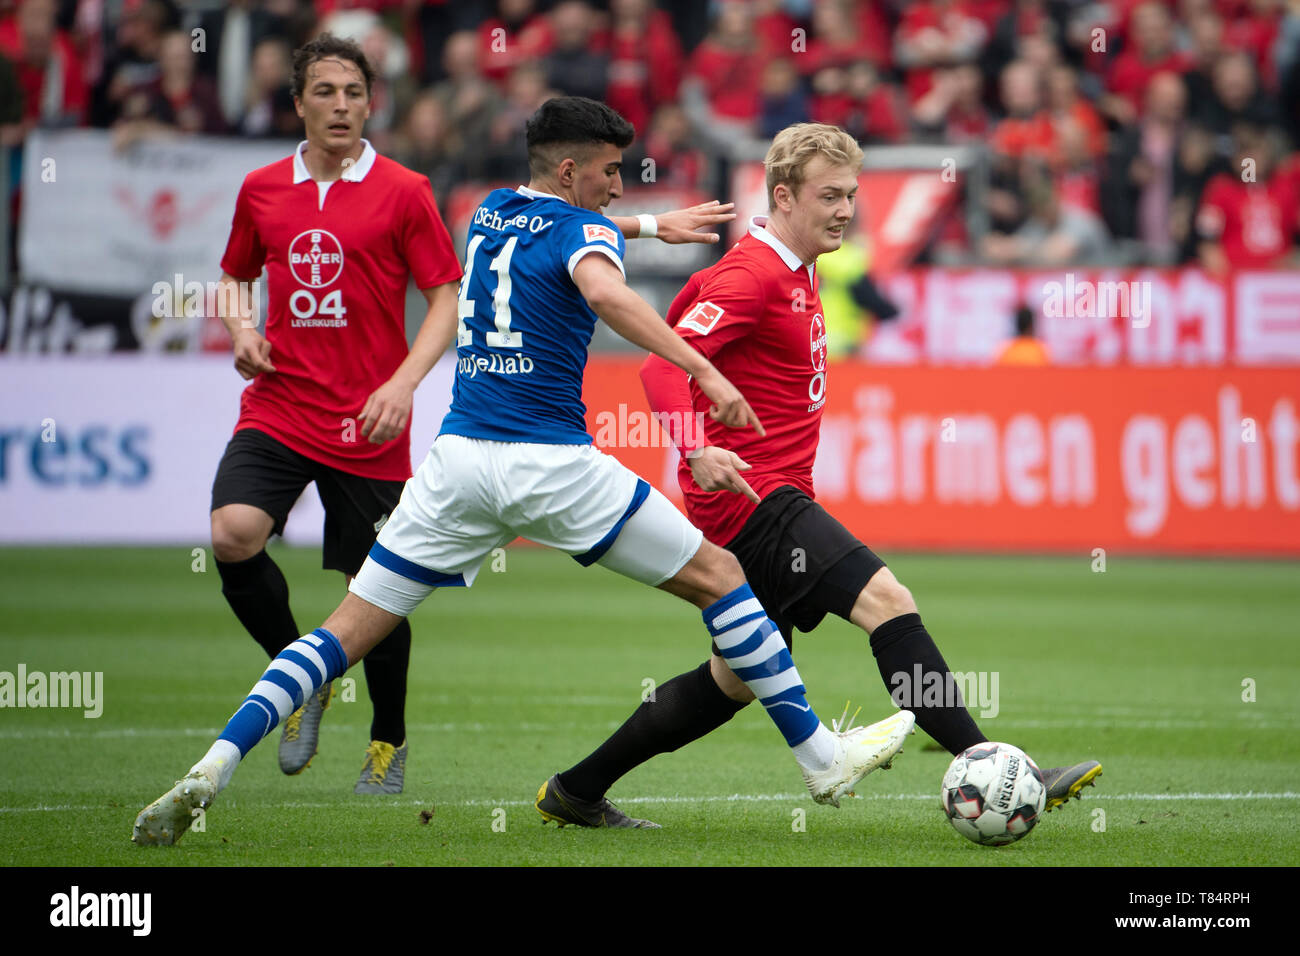 Leverkusen, Germany. 11th May, 2019. Soccer: Bundesliga, Bayer Leverkusen - FC Schalke 04, 33rd matchday n of the BayArena. Leverkusen's Julian Brandt (r) and Schalkes Nassem Boujellab try to play the ball. Credit: Federico Gambarini/dpa - IMPORTANT NOTE: In accordance with the requirements of the DFL Deutsche Fußball Liga or the DFB Deutscher Fußball-Bund, it is prohibited to use or have used photographs taken in the stadium and/or the match in the form of sequence images and/or video-like photo sequences./dpa/Alamy Live News - Stock Image